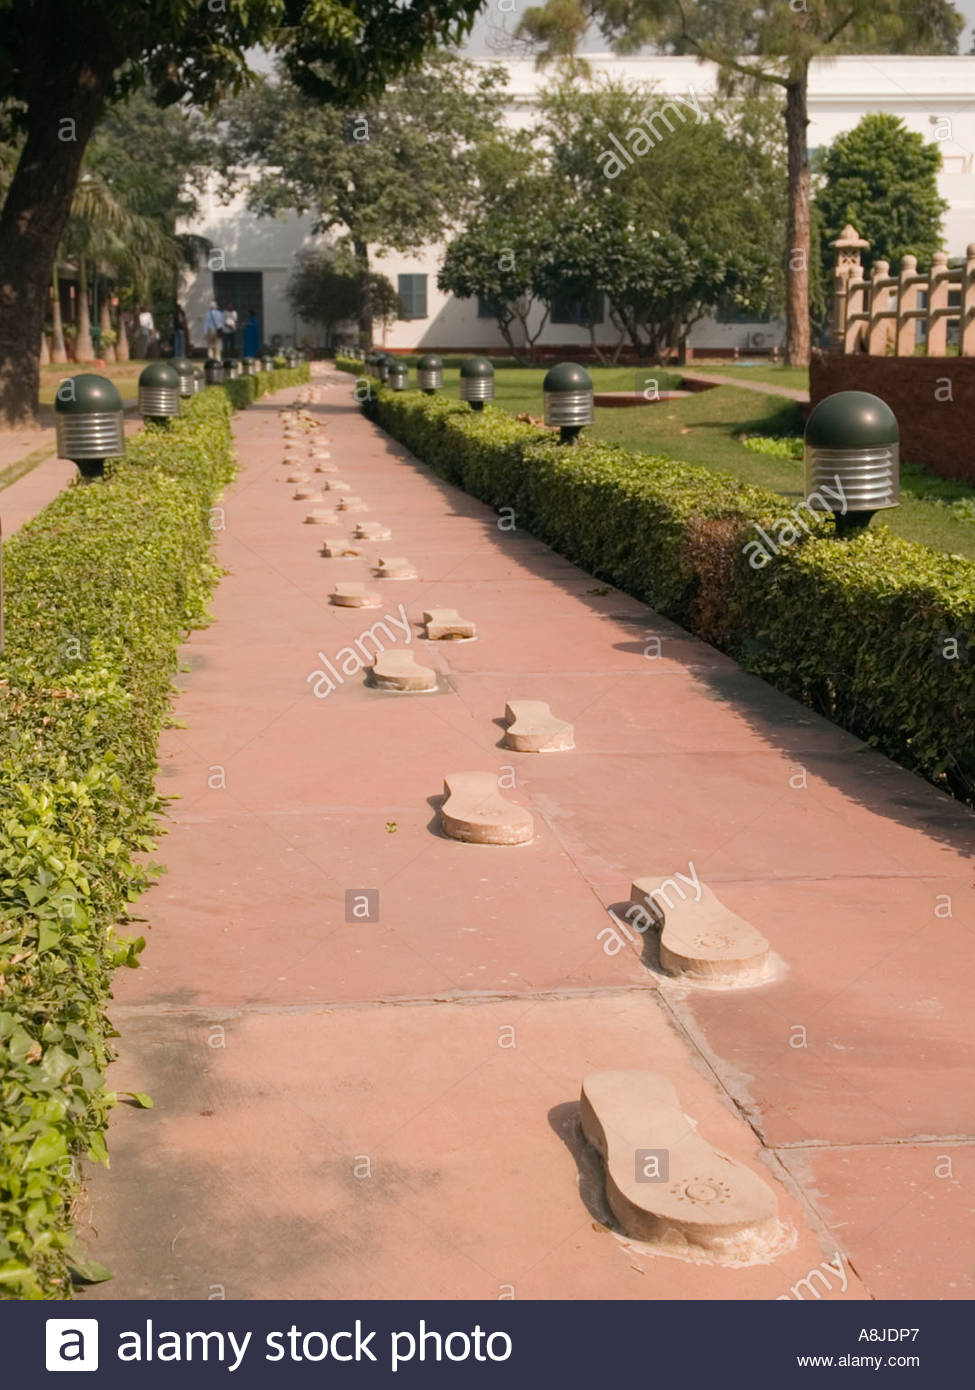 National Gandhi Museum Delhi, National Gandhi Museum with footprints marking Gandhi's last walk ...